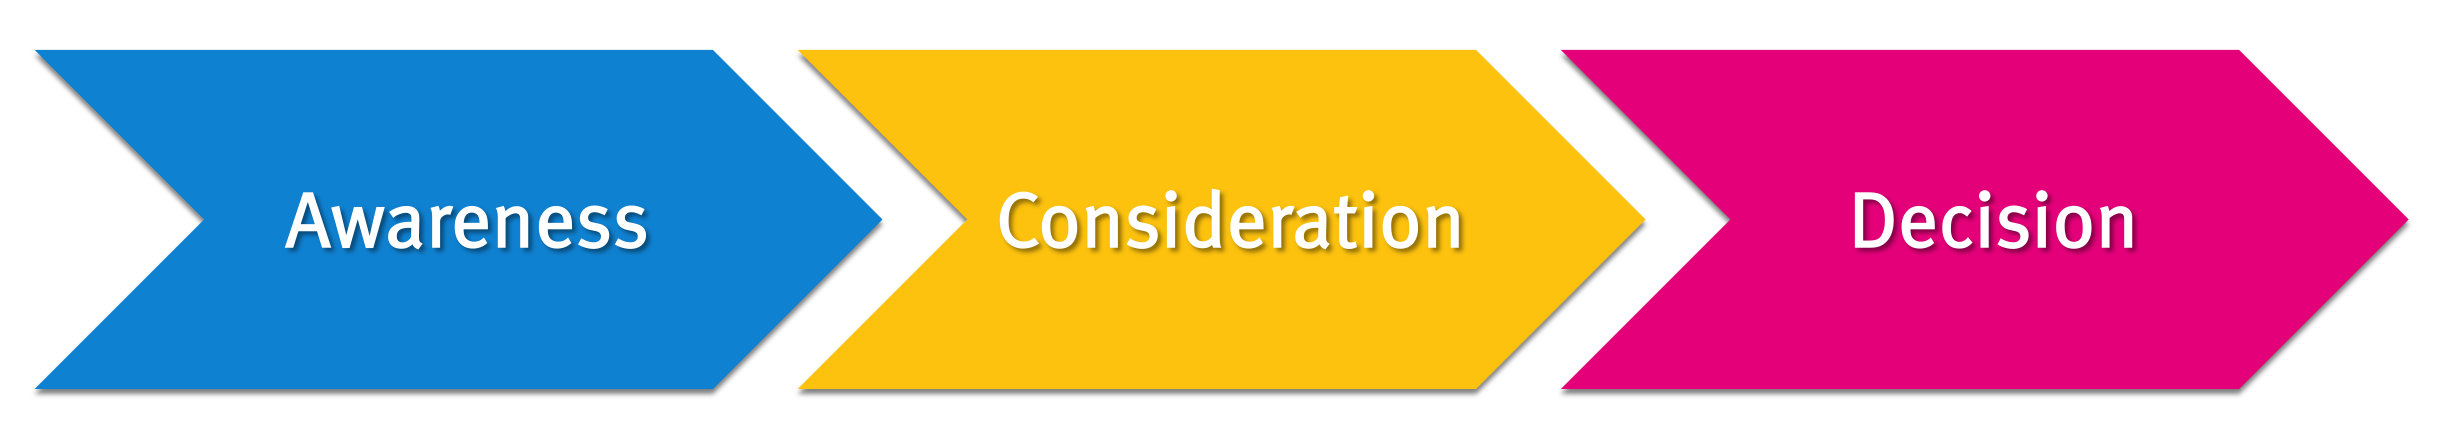 awareness-consideration-decision-graphic-inbound-arrows-1